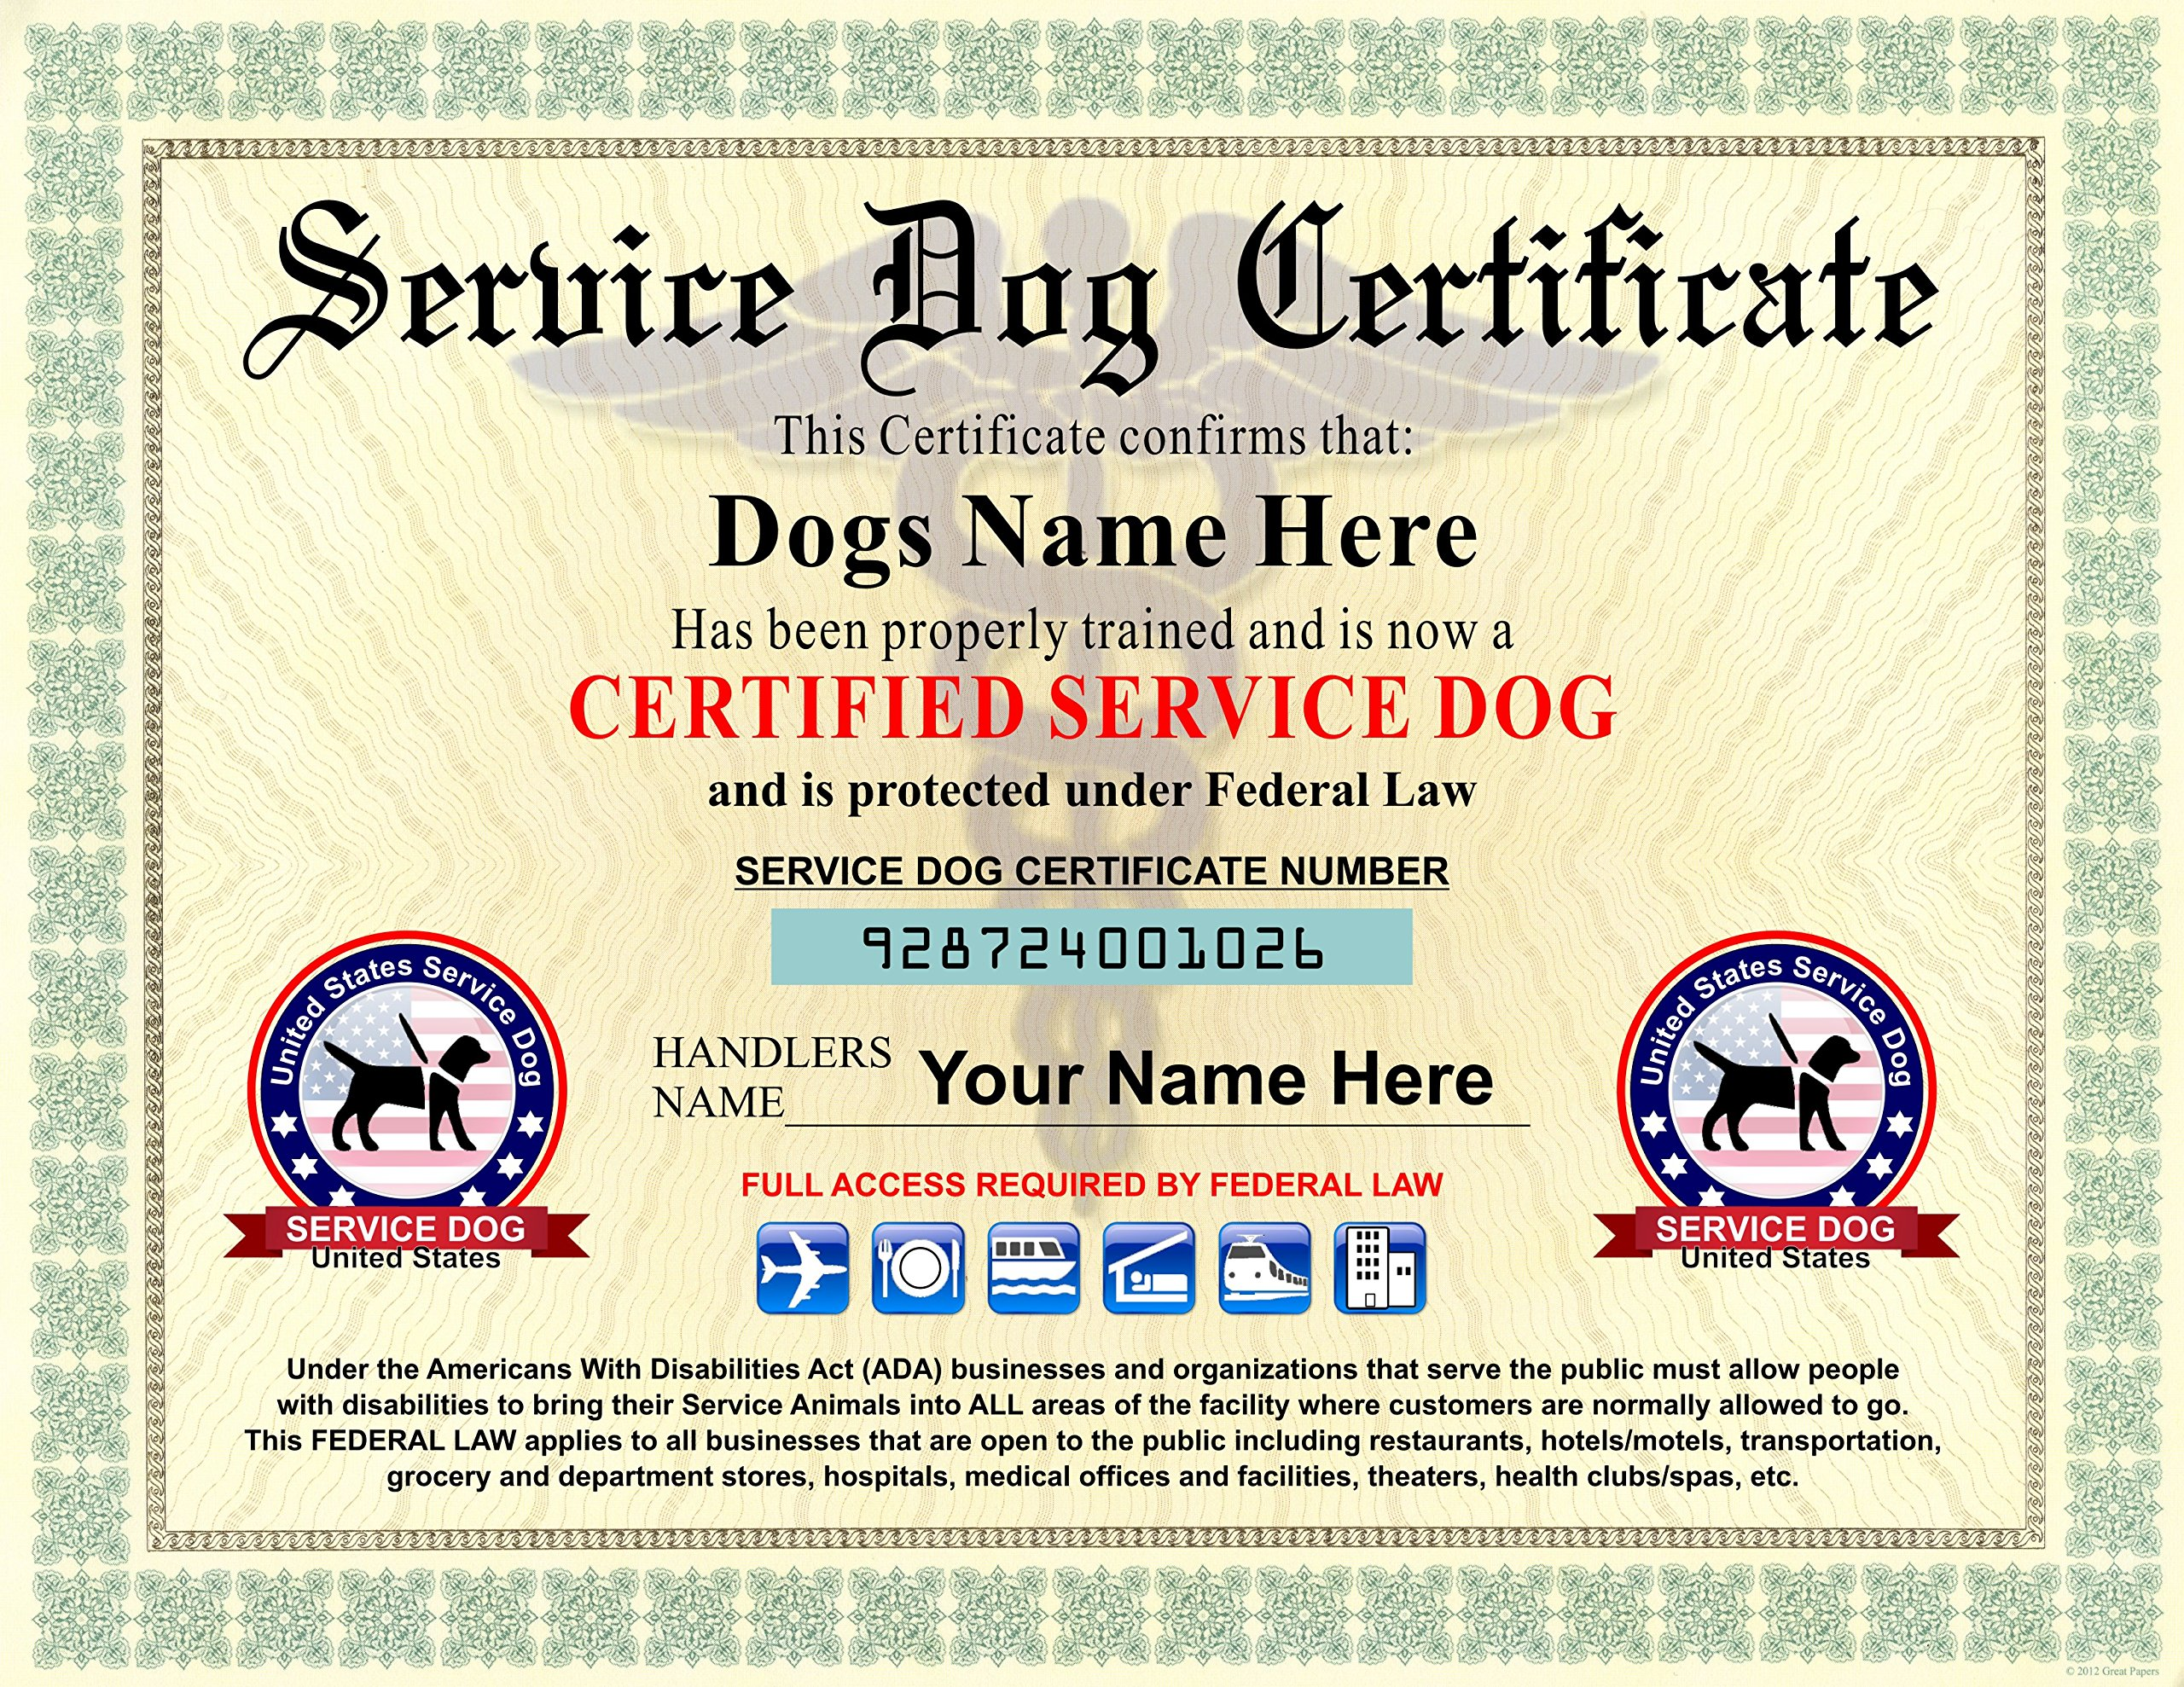 Service Dog Certificate - We customize it with Dogs and Handlers Name - 8.5 by 11 inches